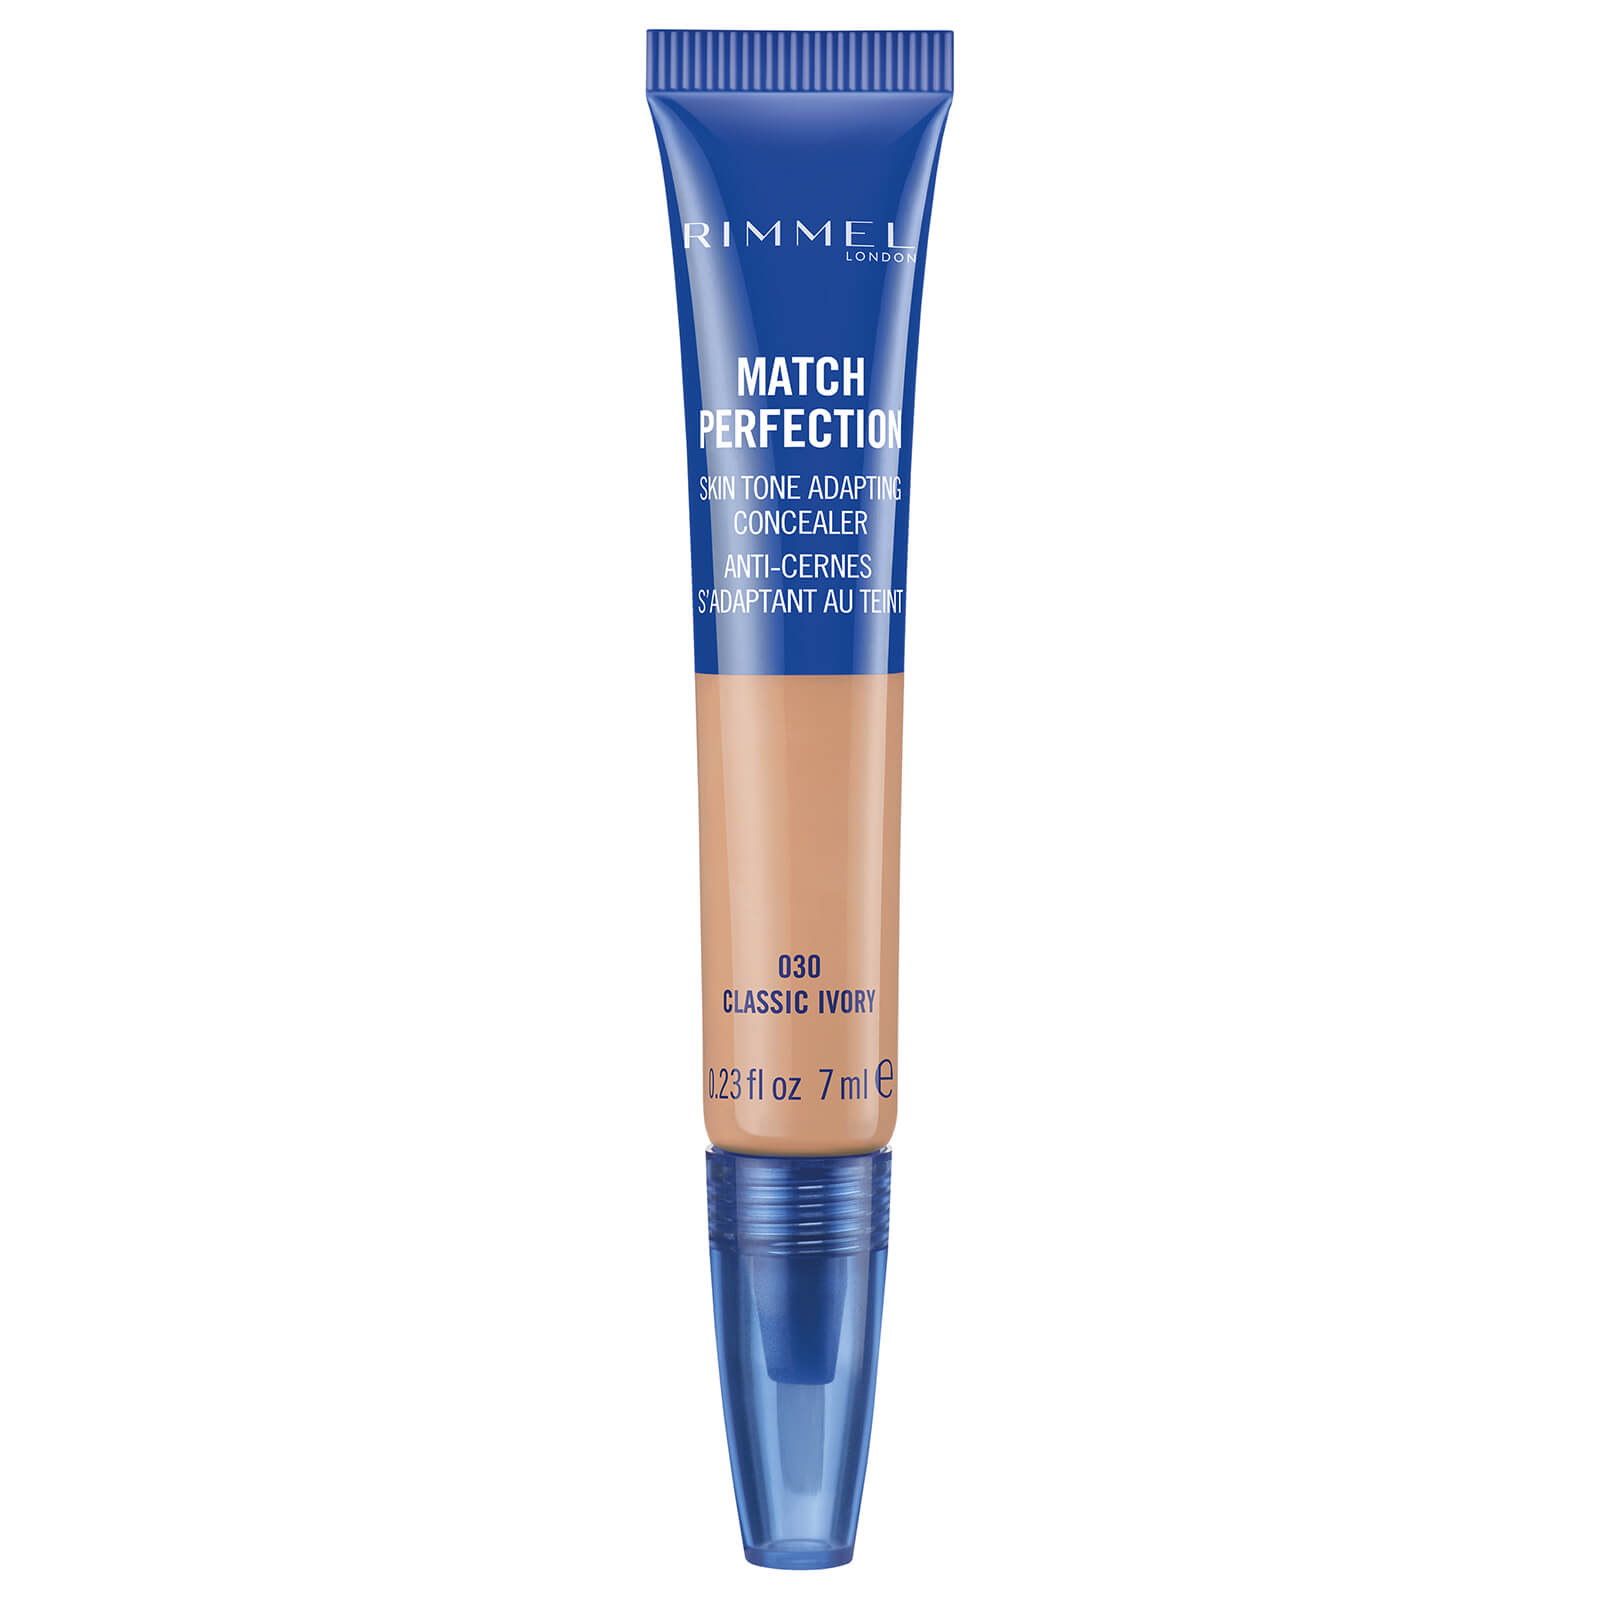 rimmel match perfection concealer 7ml (various shades) - classic ivory